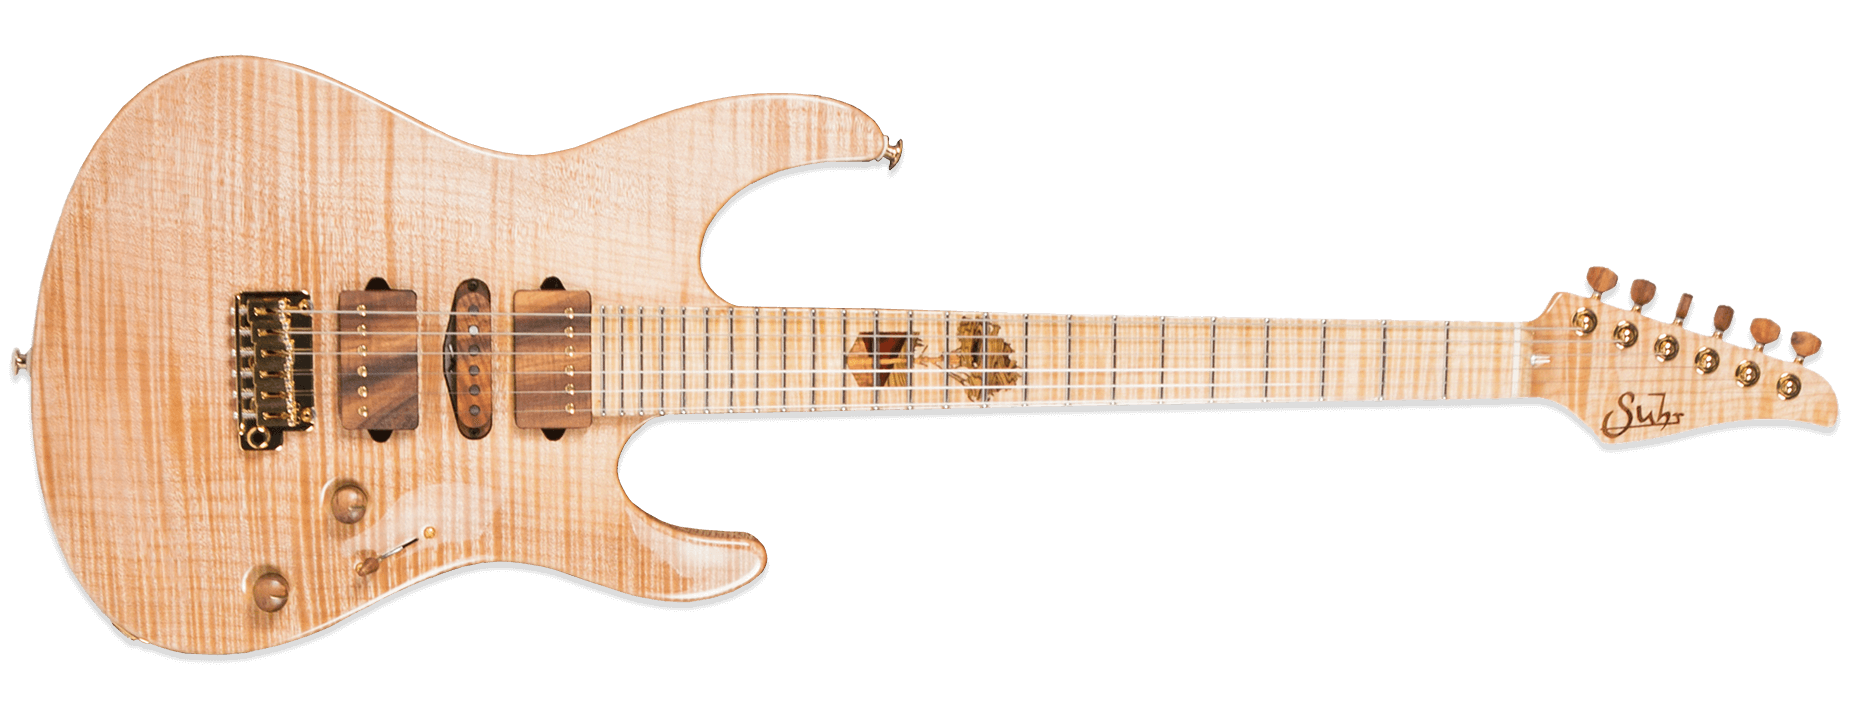 Suhr Trilogy Collection 2016